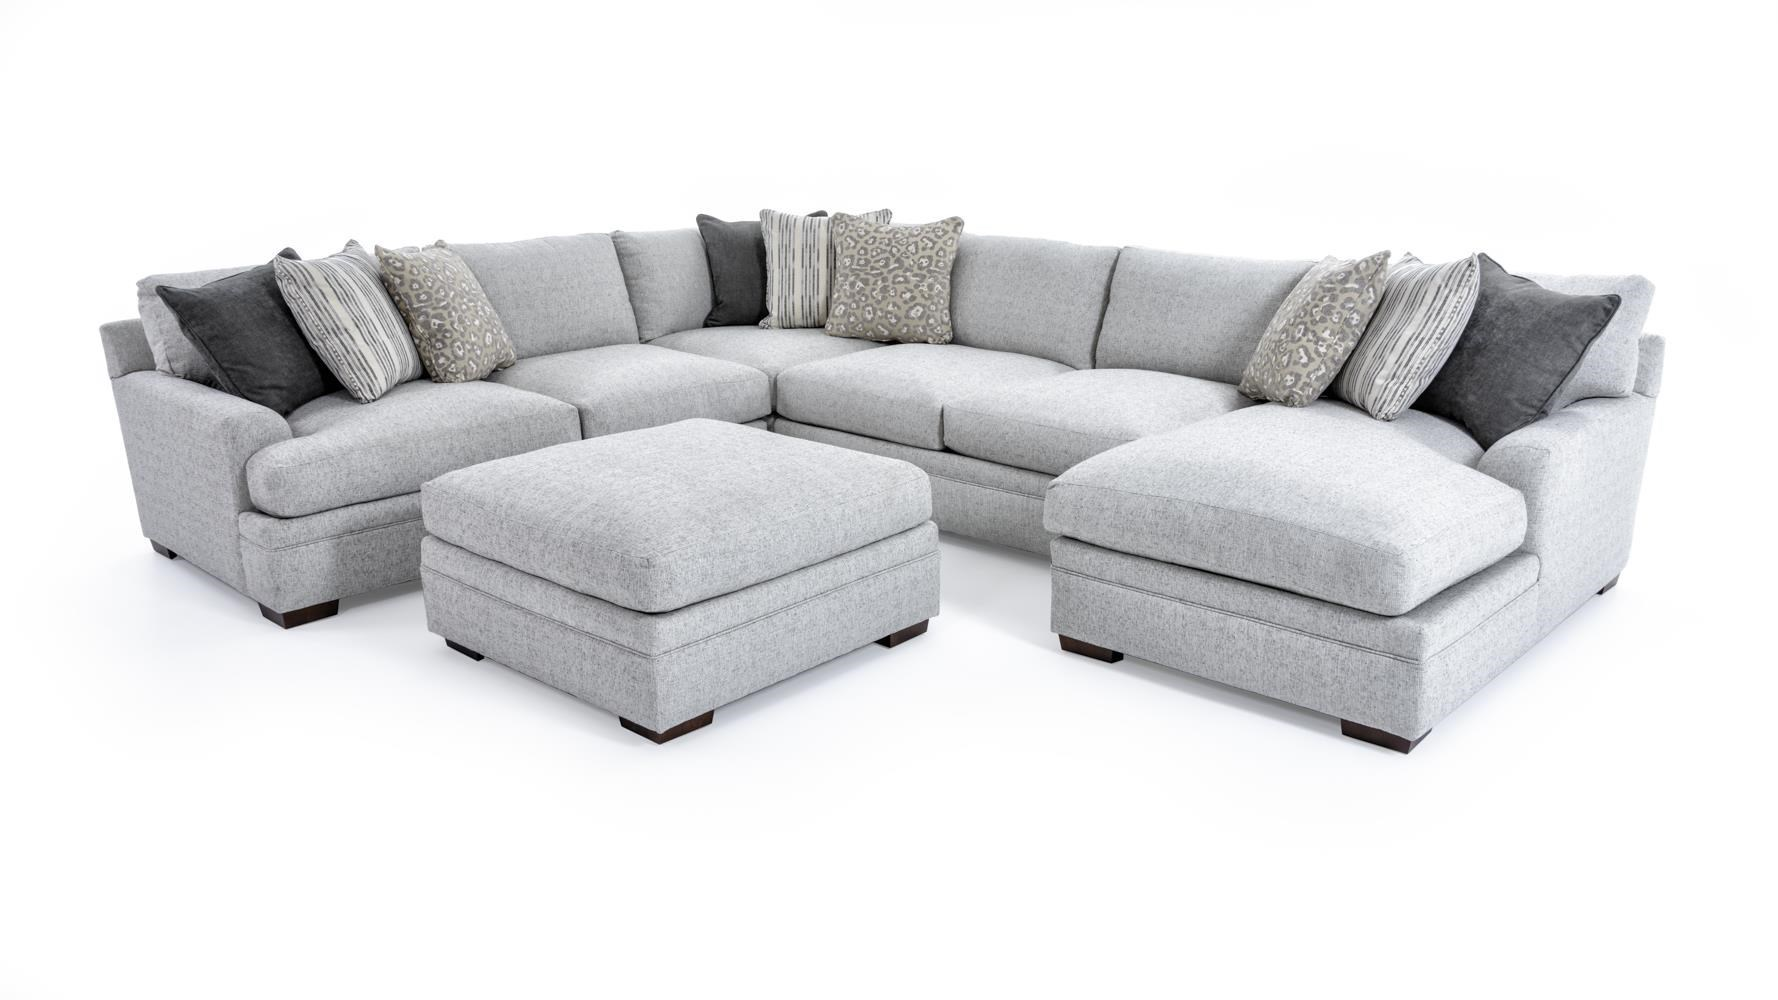 Gentil Casual Five Piece Sectional Sofa With Ottoman